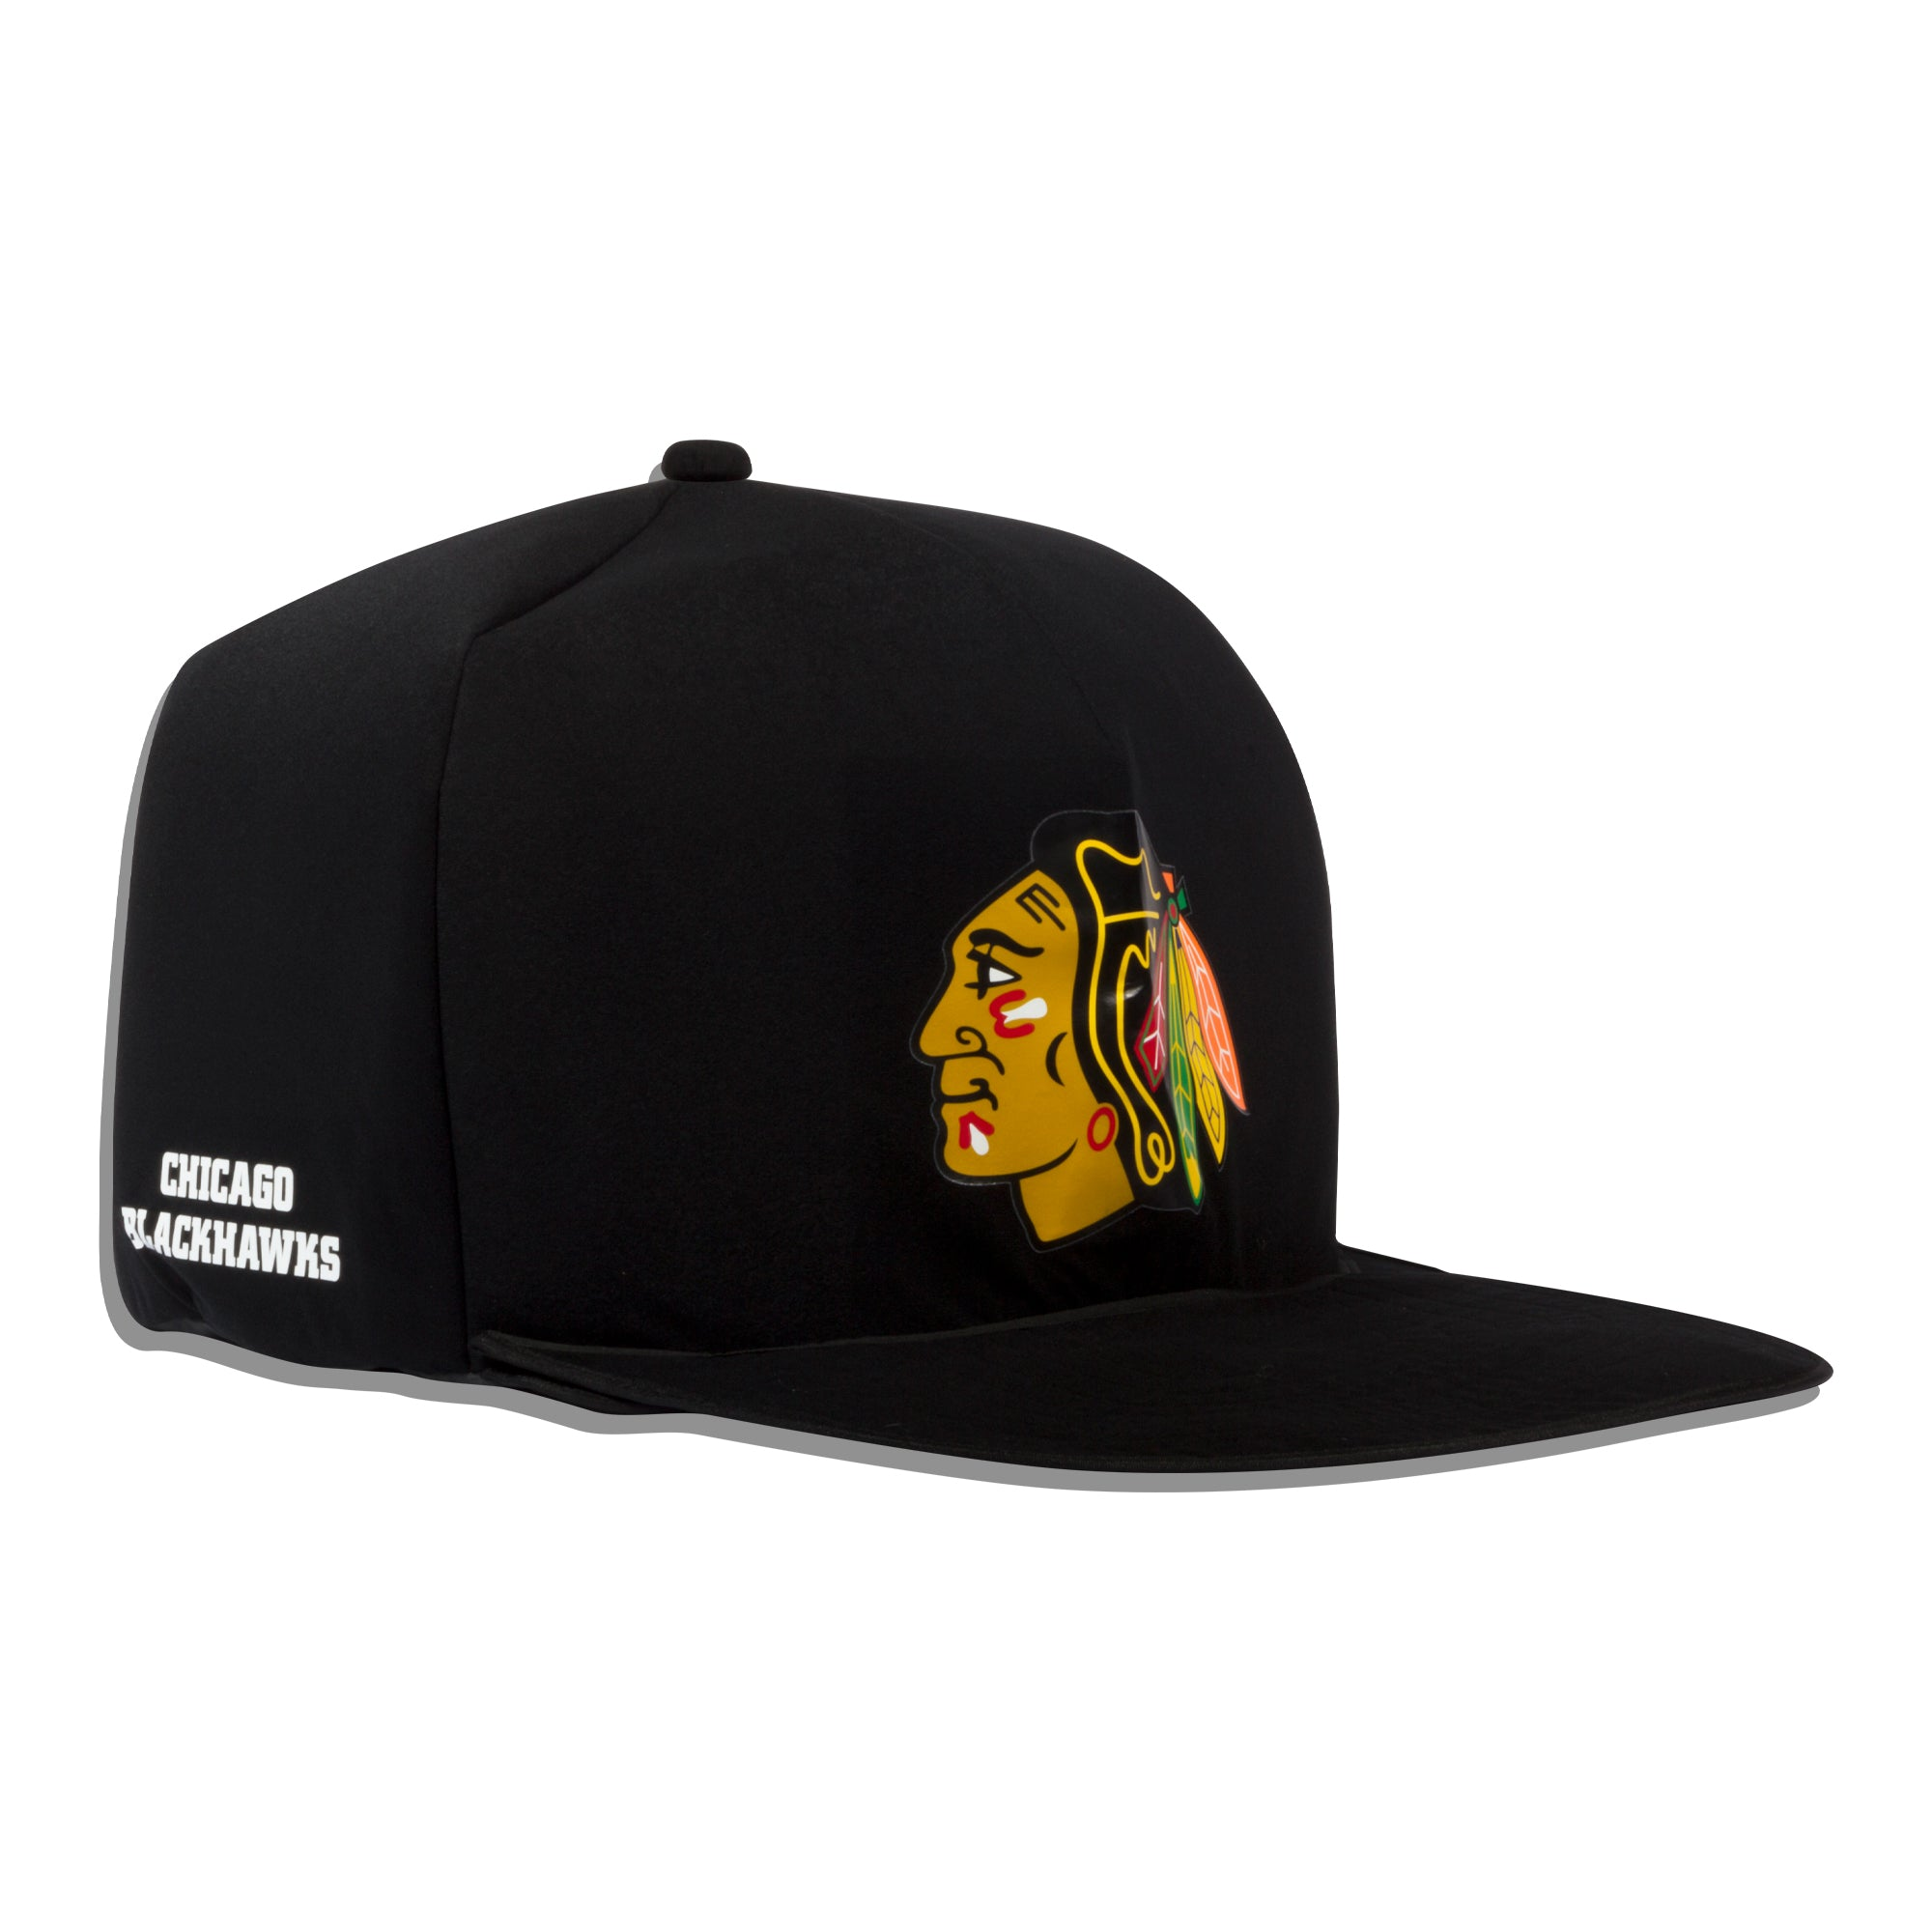 Nap Cap - Plush Edition Chicago Blackhawks